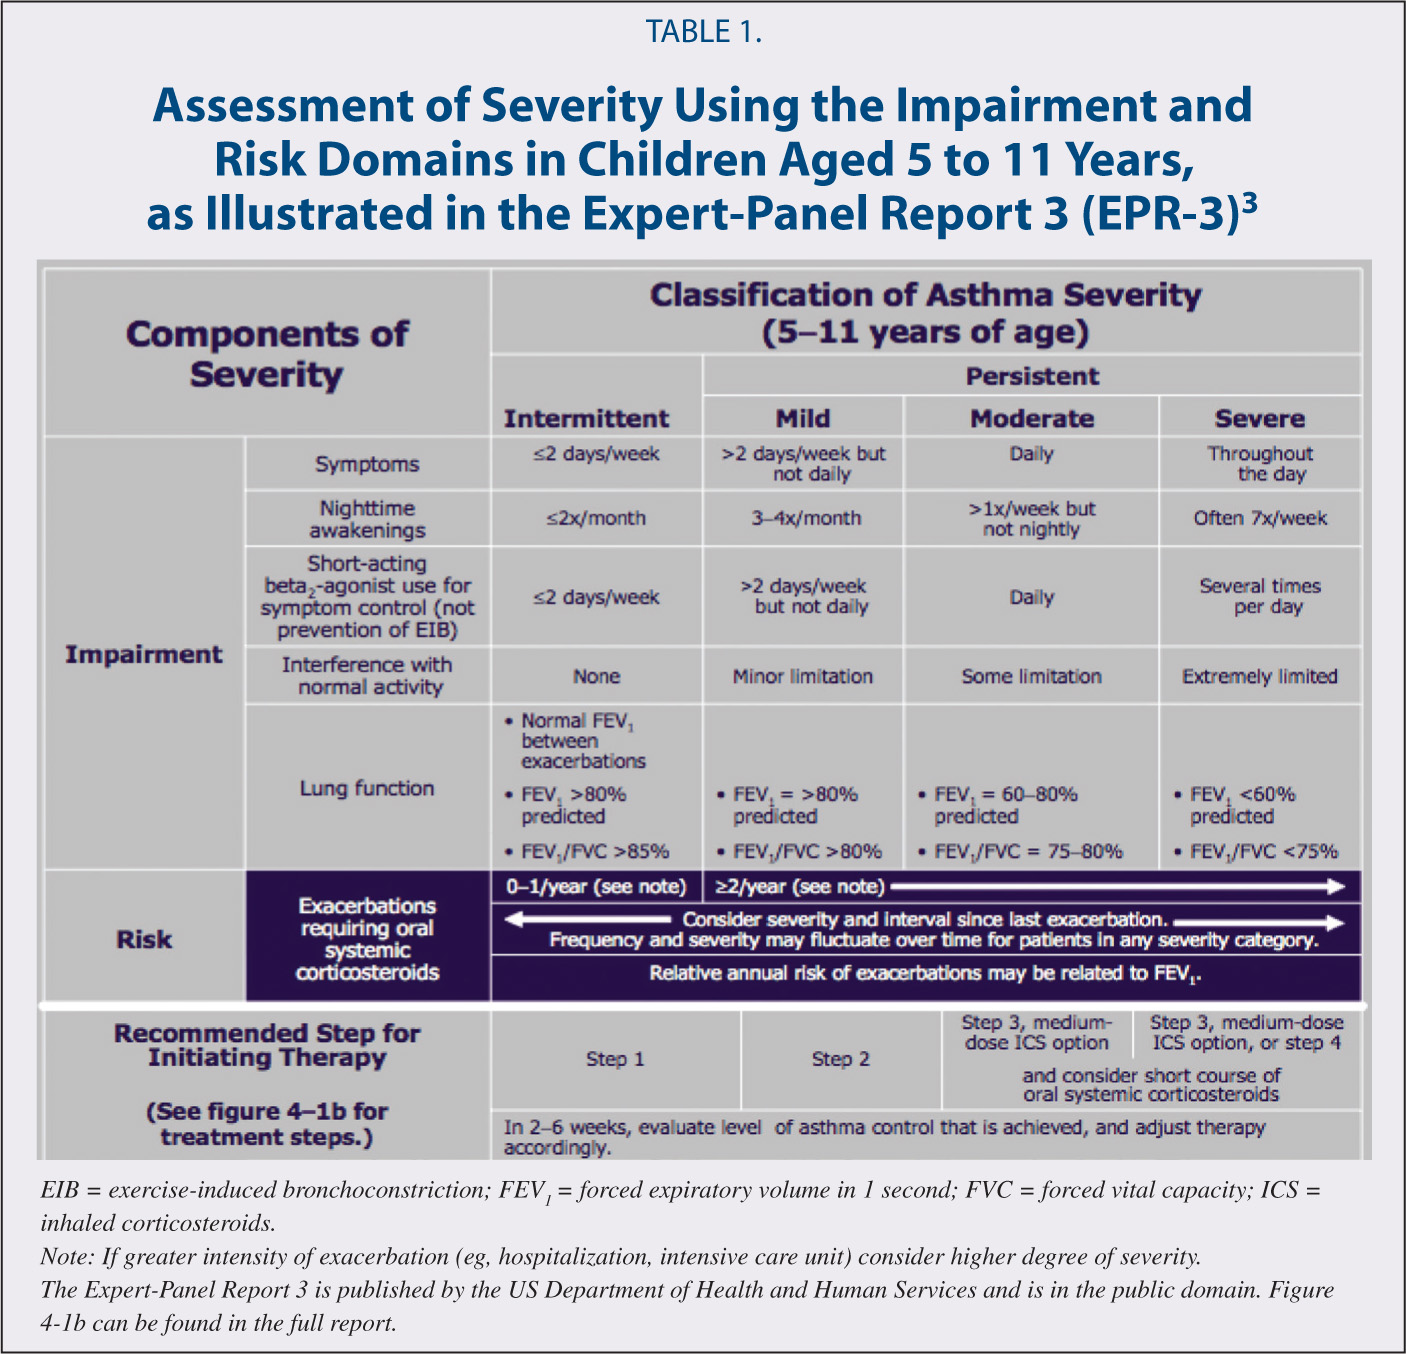 Assessment of Severity Using the Impairment and Risk Domains in Children Aged 5 to 11 Years, as Illustrated in the Expert-Panel Report 3 (EPR-3)3